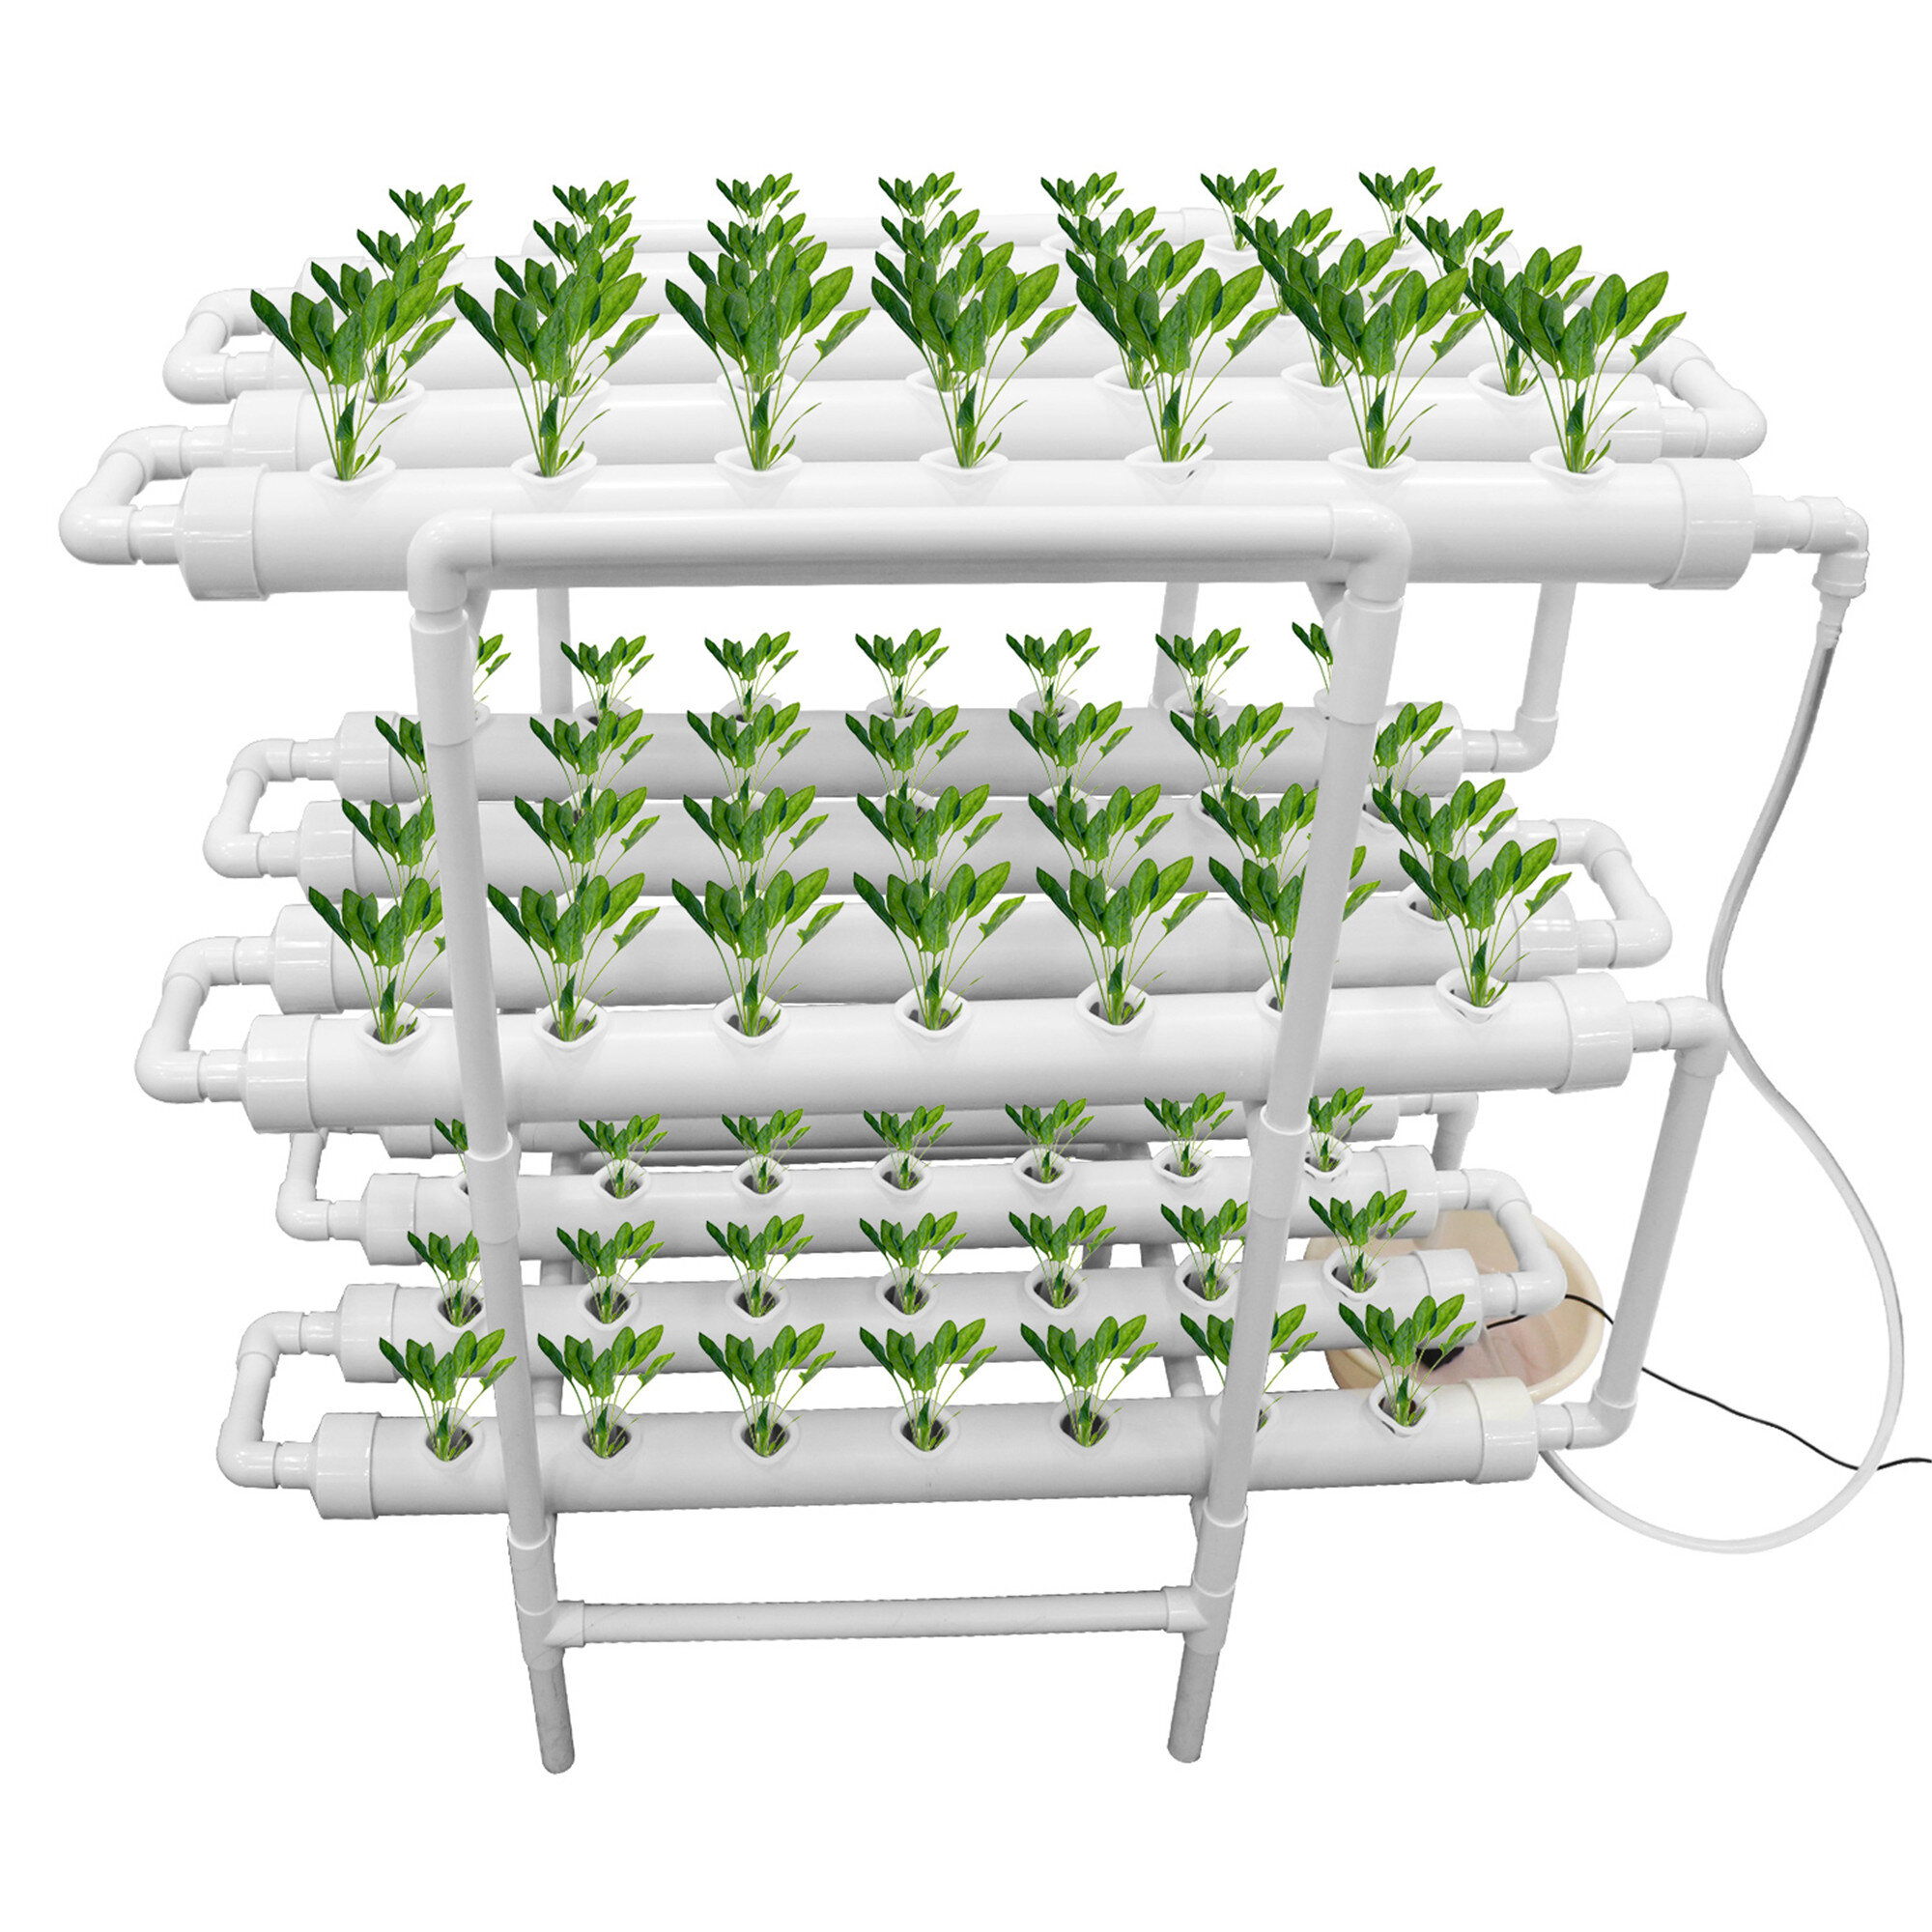 Luna S Elegant Home Upgraded Hydroponic Grow Kit Hydroponic Pipe Home Balcony Garden Grow Kit Plant Growing Systems